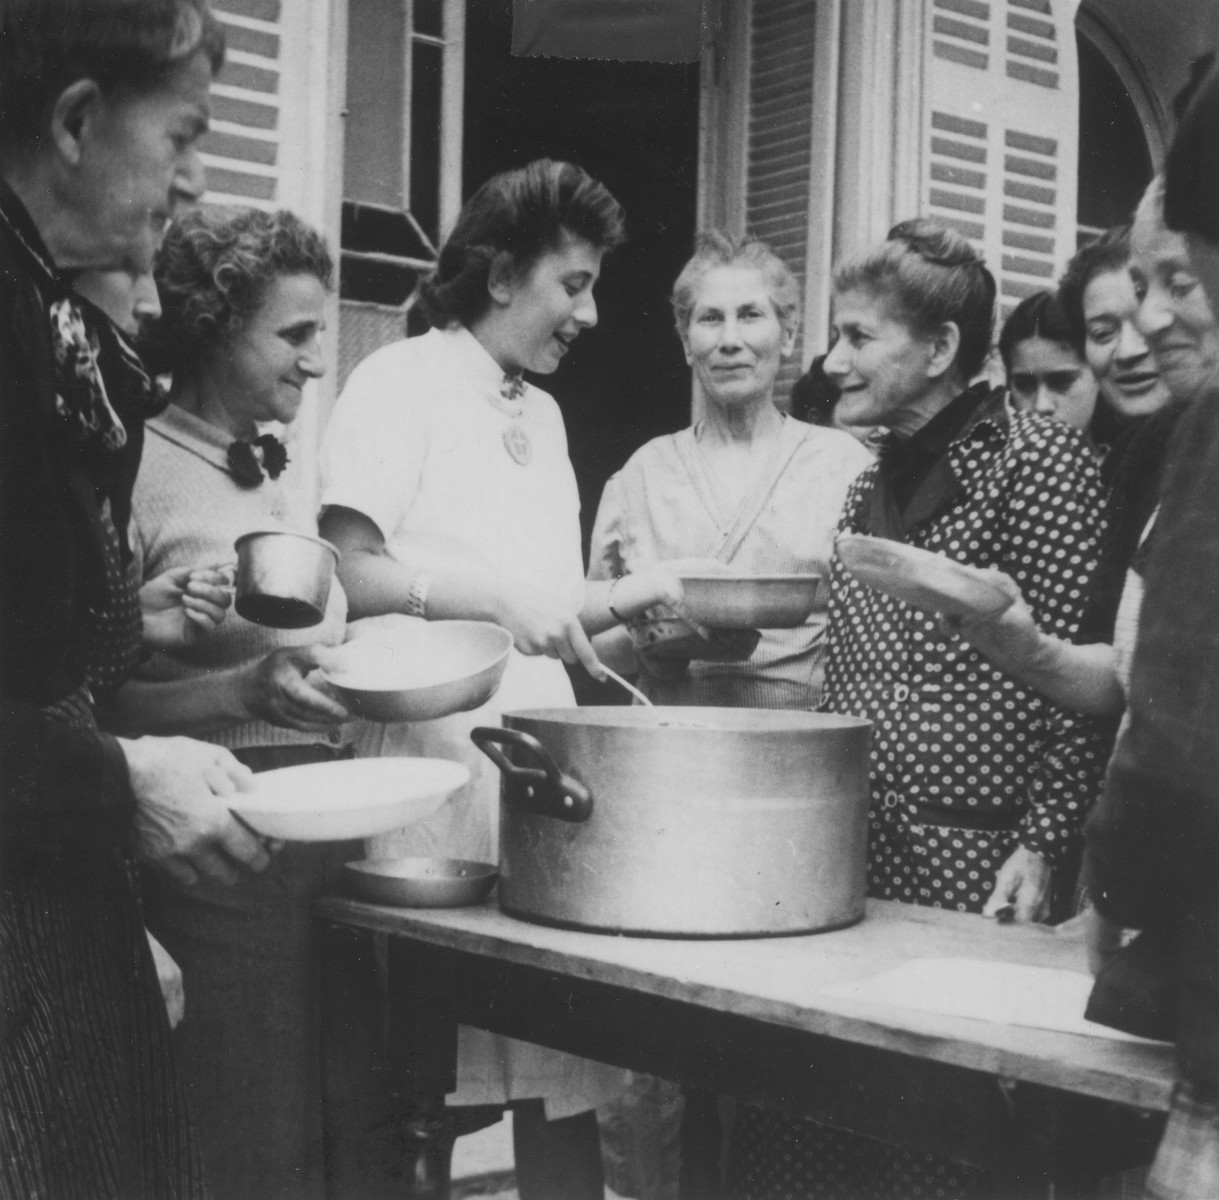 OSE relief worker Margot Stein serves soup to a group of Jewish refugee women at the Hotel Bompard internment camp.